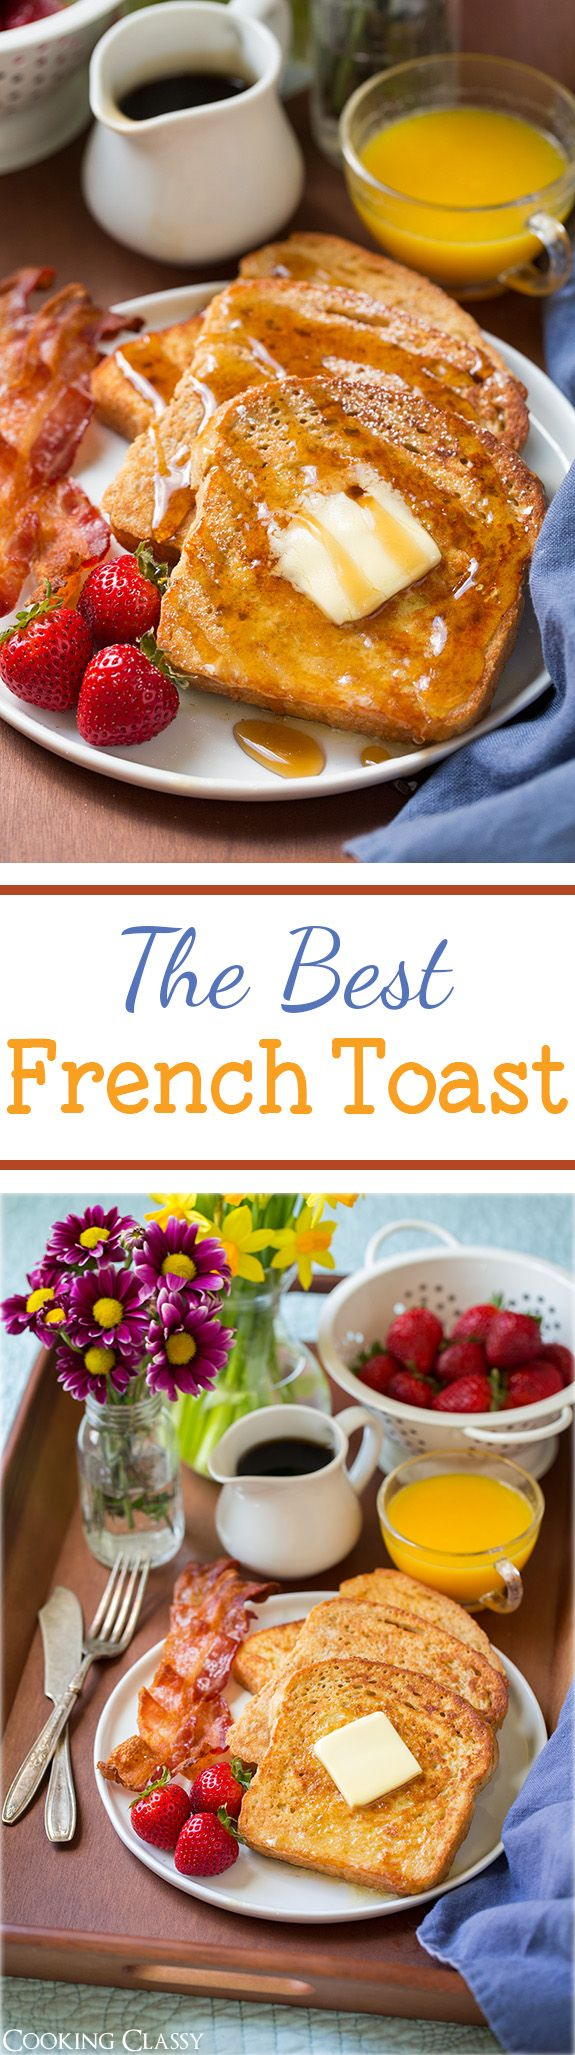 French Toast - This is my favorite recipe for french toast!! It uses a little bit of flour and it keeps the french toast fluffy and the small amount of cream keeps it rich.